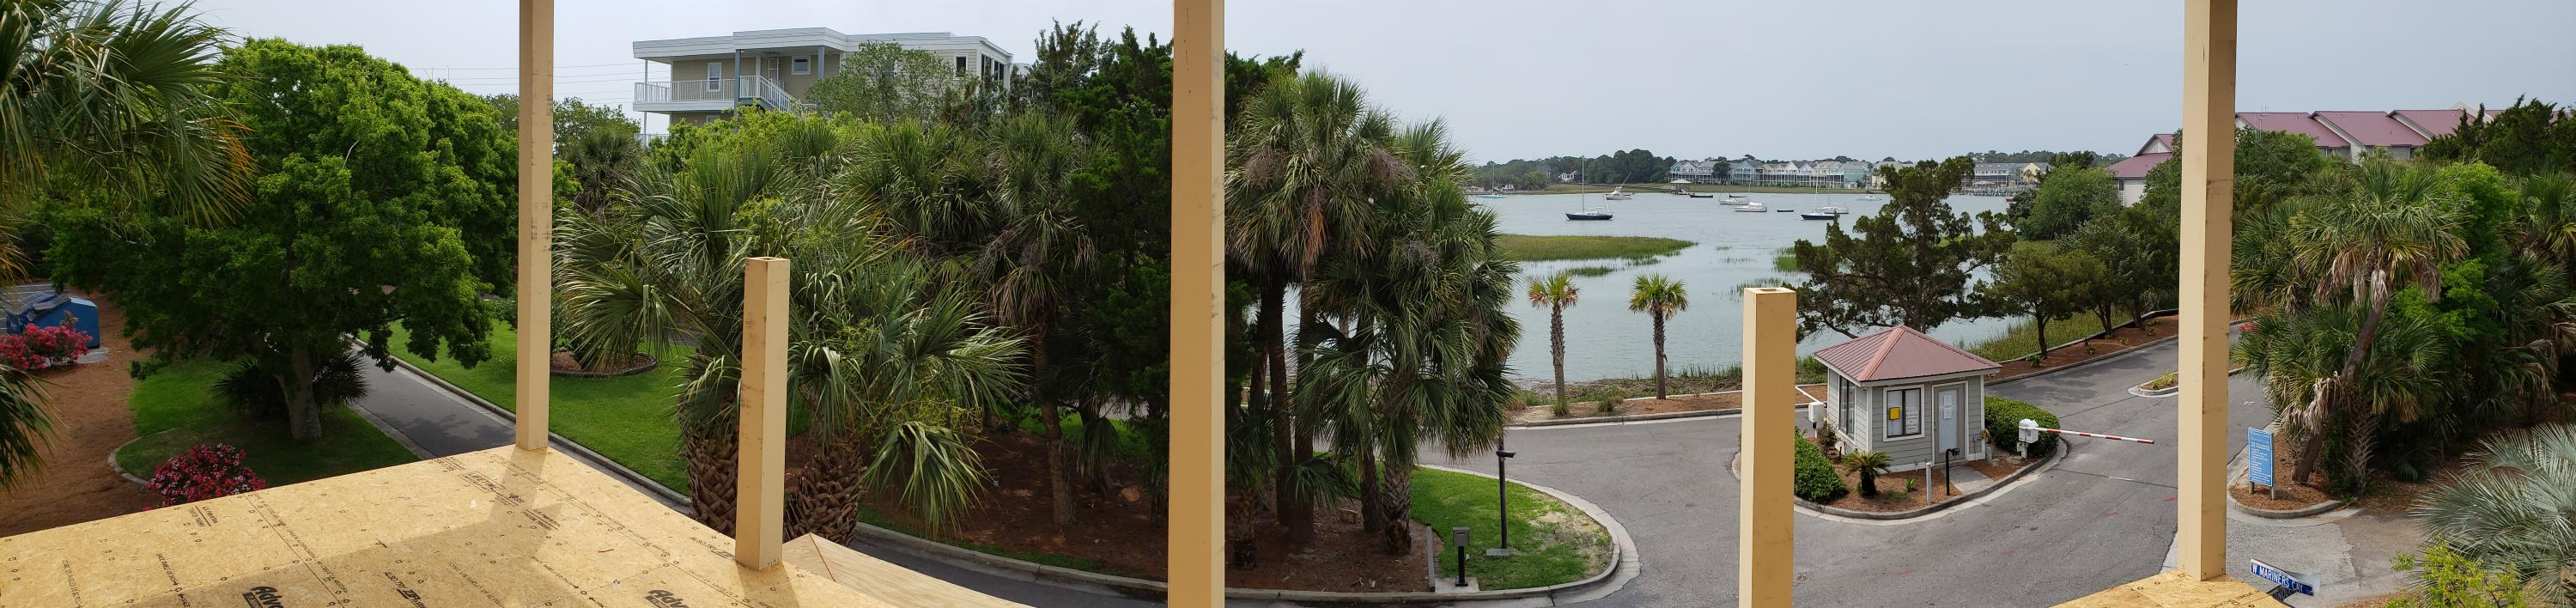 Mariners Cay Homes For Sale - 14 Mariners Cay, Folly Beach, SC - 24